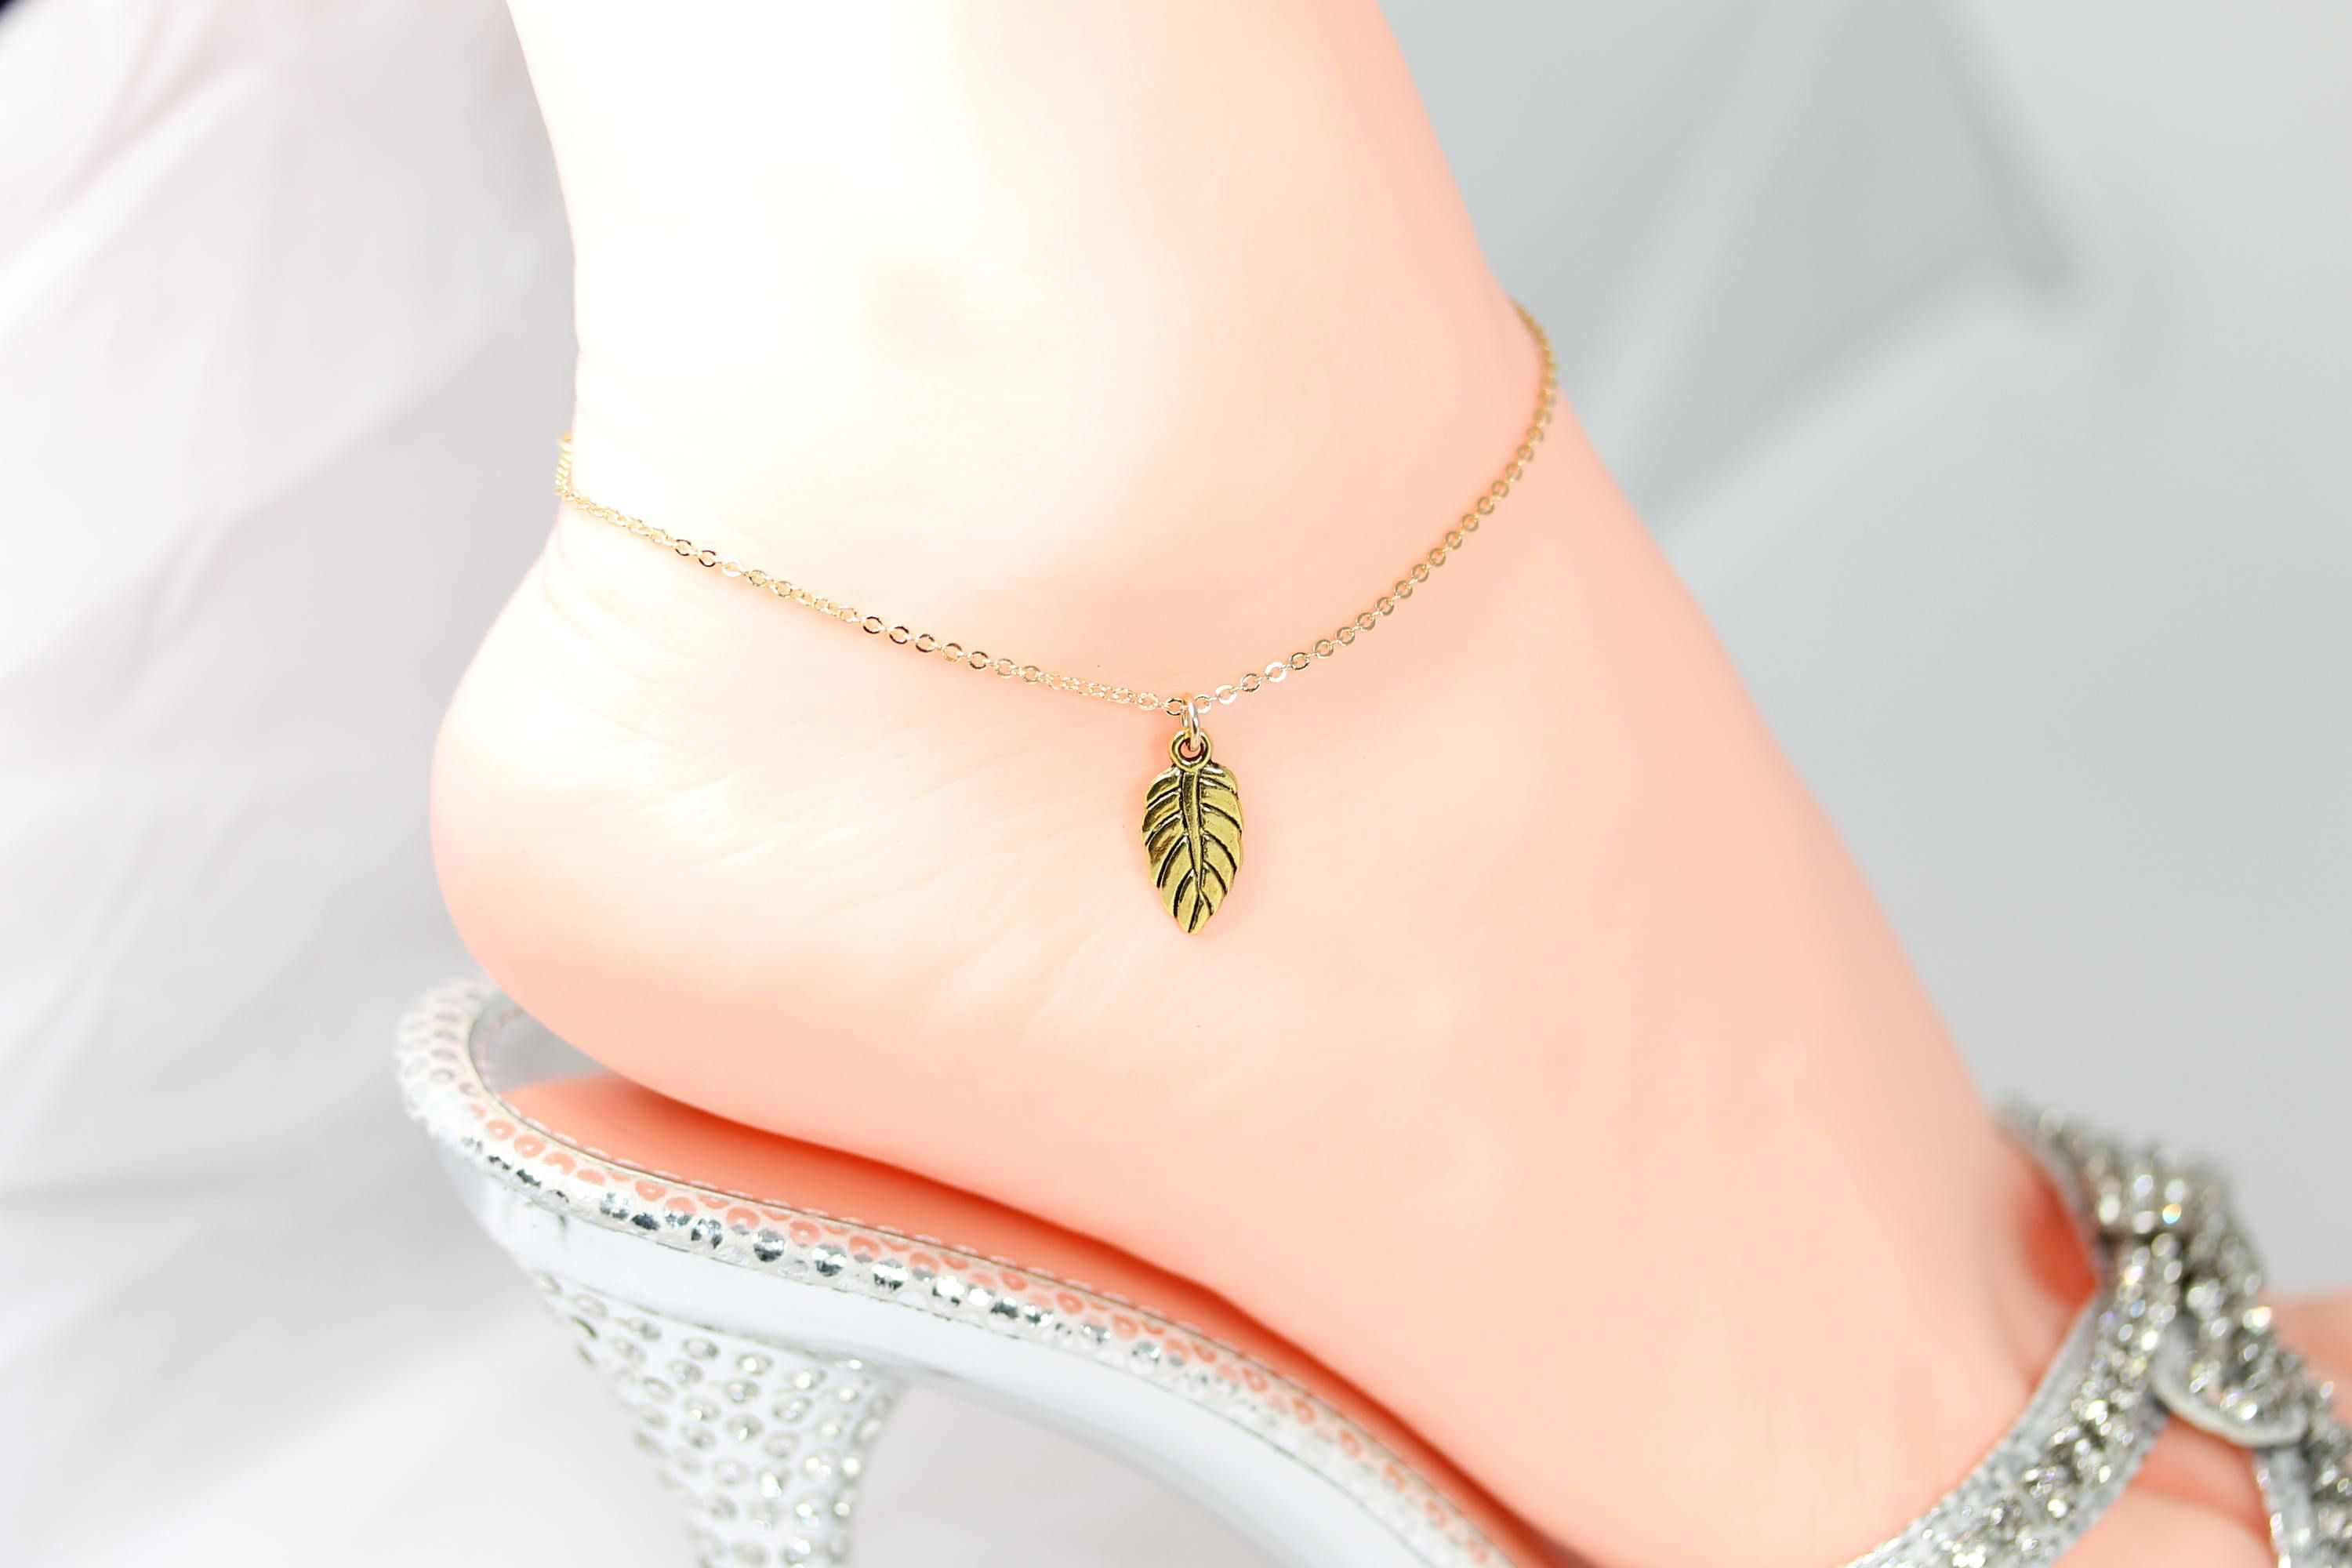 bracelet tailored less anklet ankle beaded over overstock subcat silver for gold anklets bracelets watches jewelry